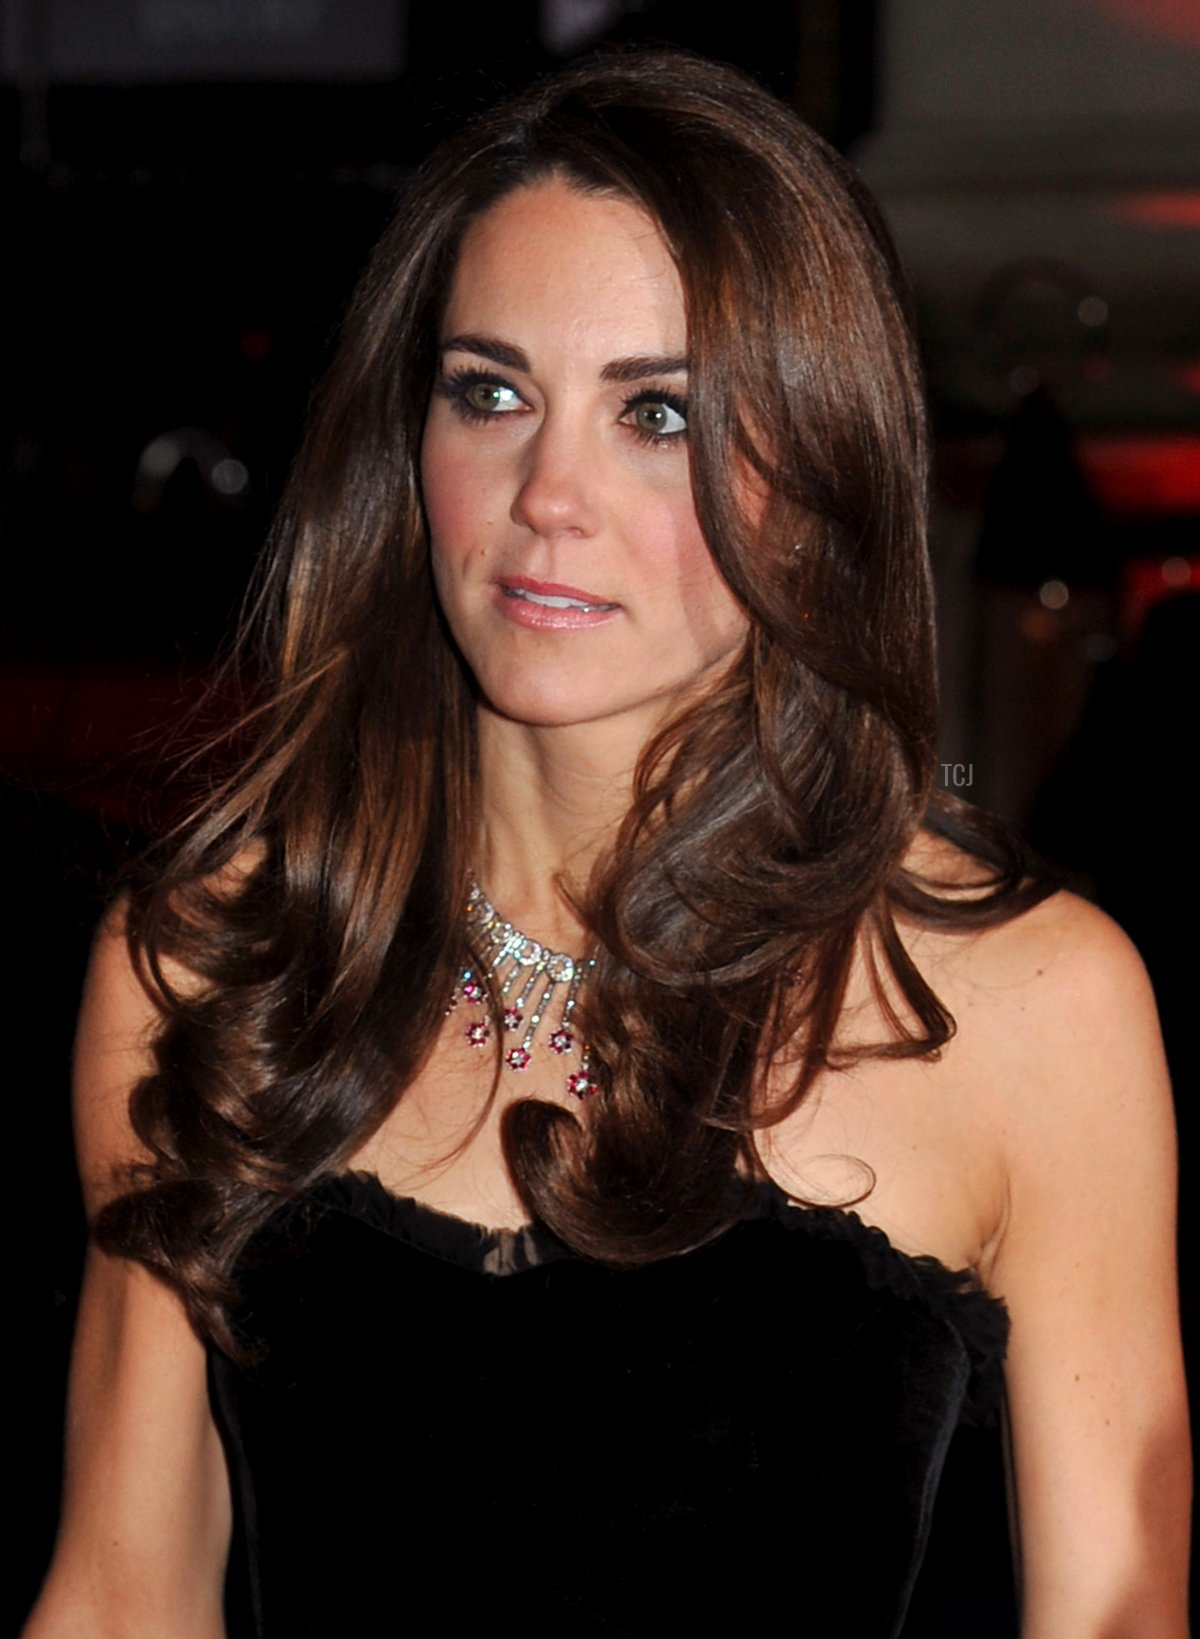 Duchess of Cambridge arrives at the 2011 Sun Military Awards at Imperial War Museum on December 19, 2011 in London